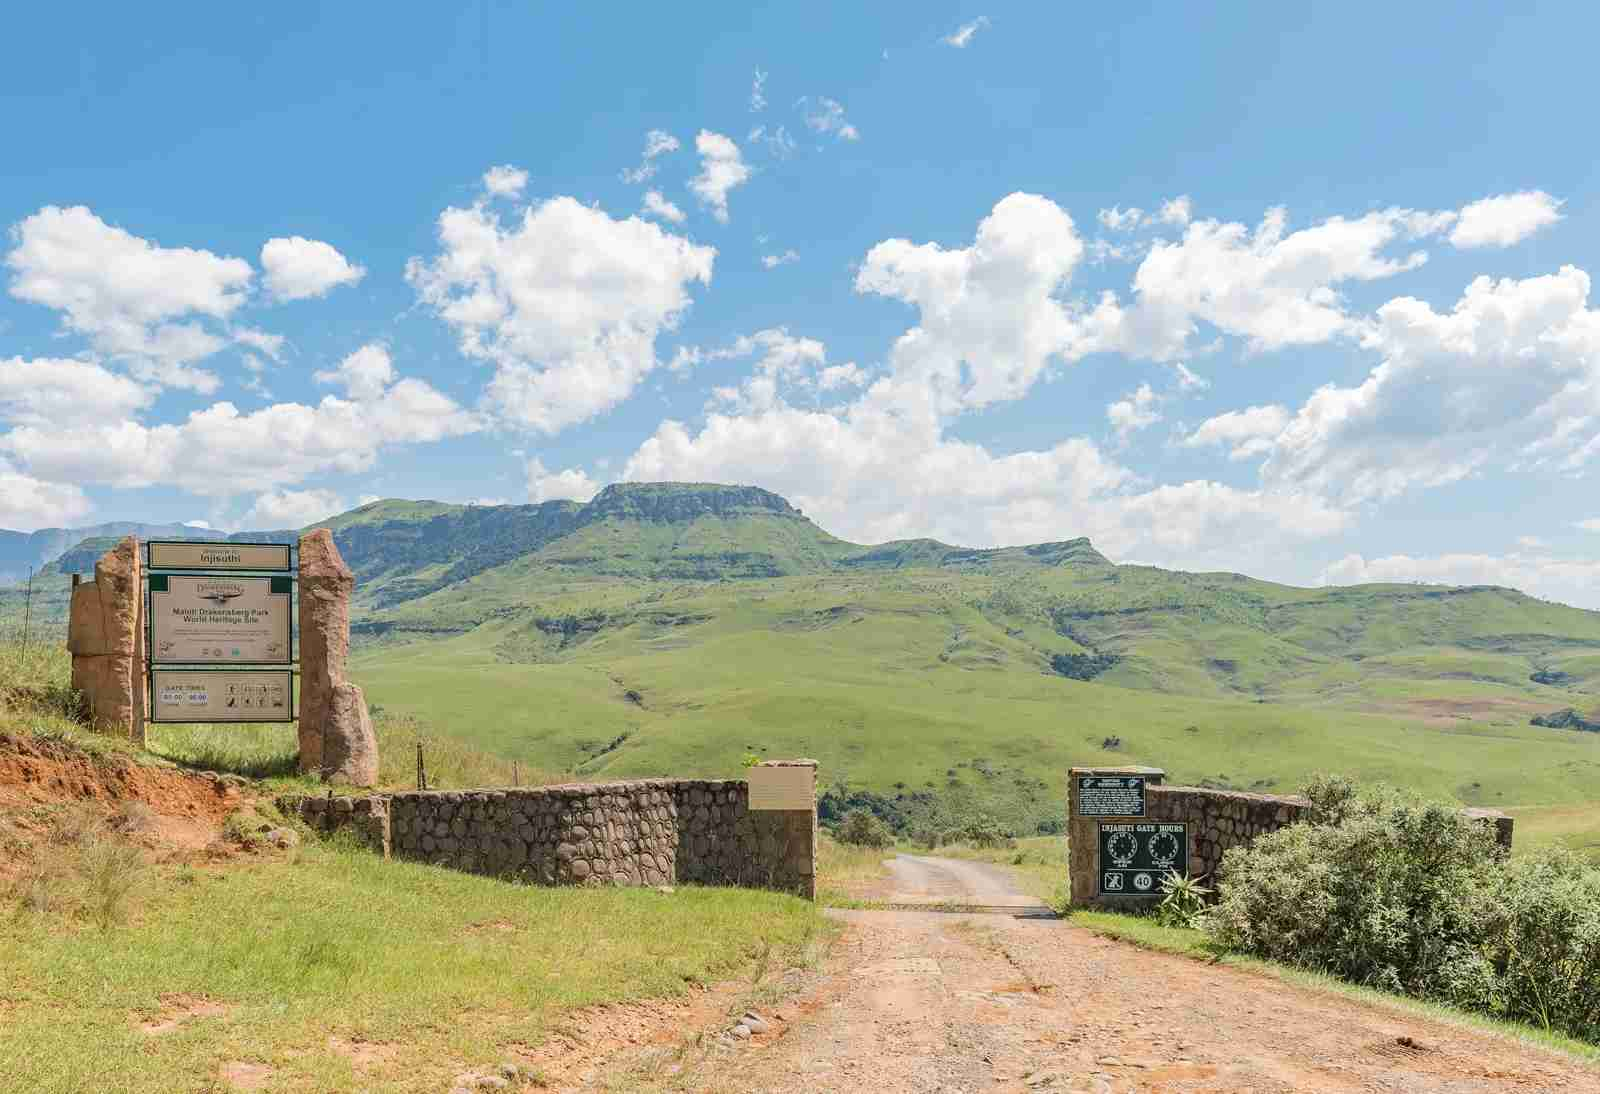 The Maloti Drakensberg Park. (Photo by GroblerduPreez/Getty Images)